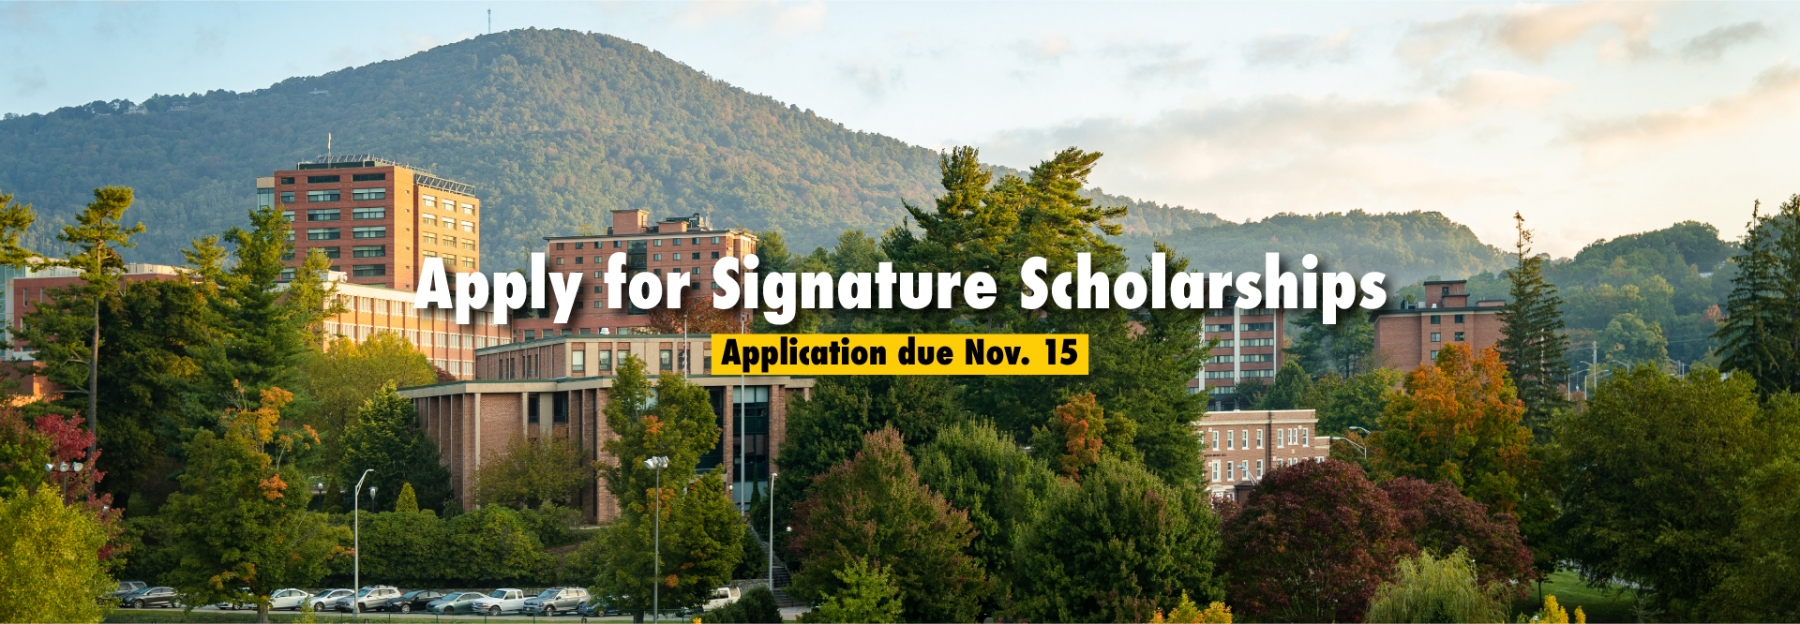 Early morning on App State's campus. Apply for Signature Scholarships - Application due Nov. 15